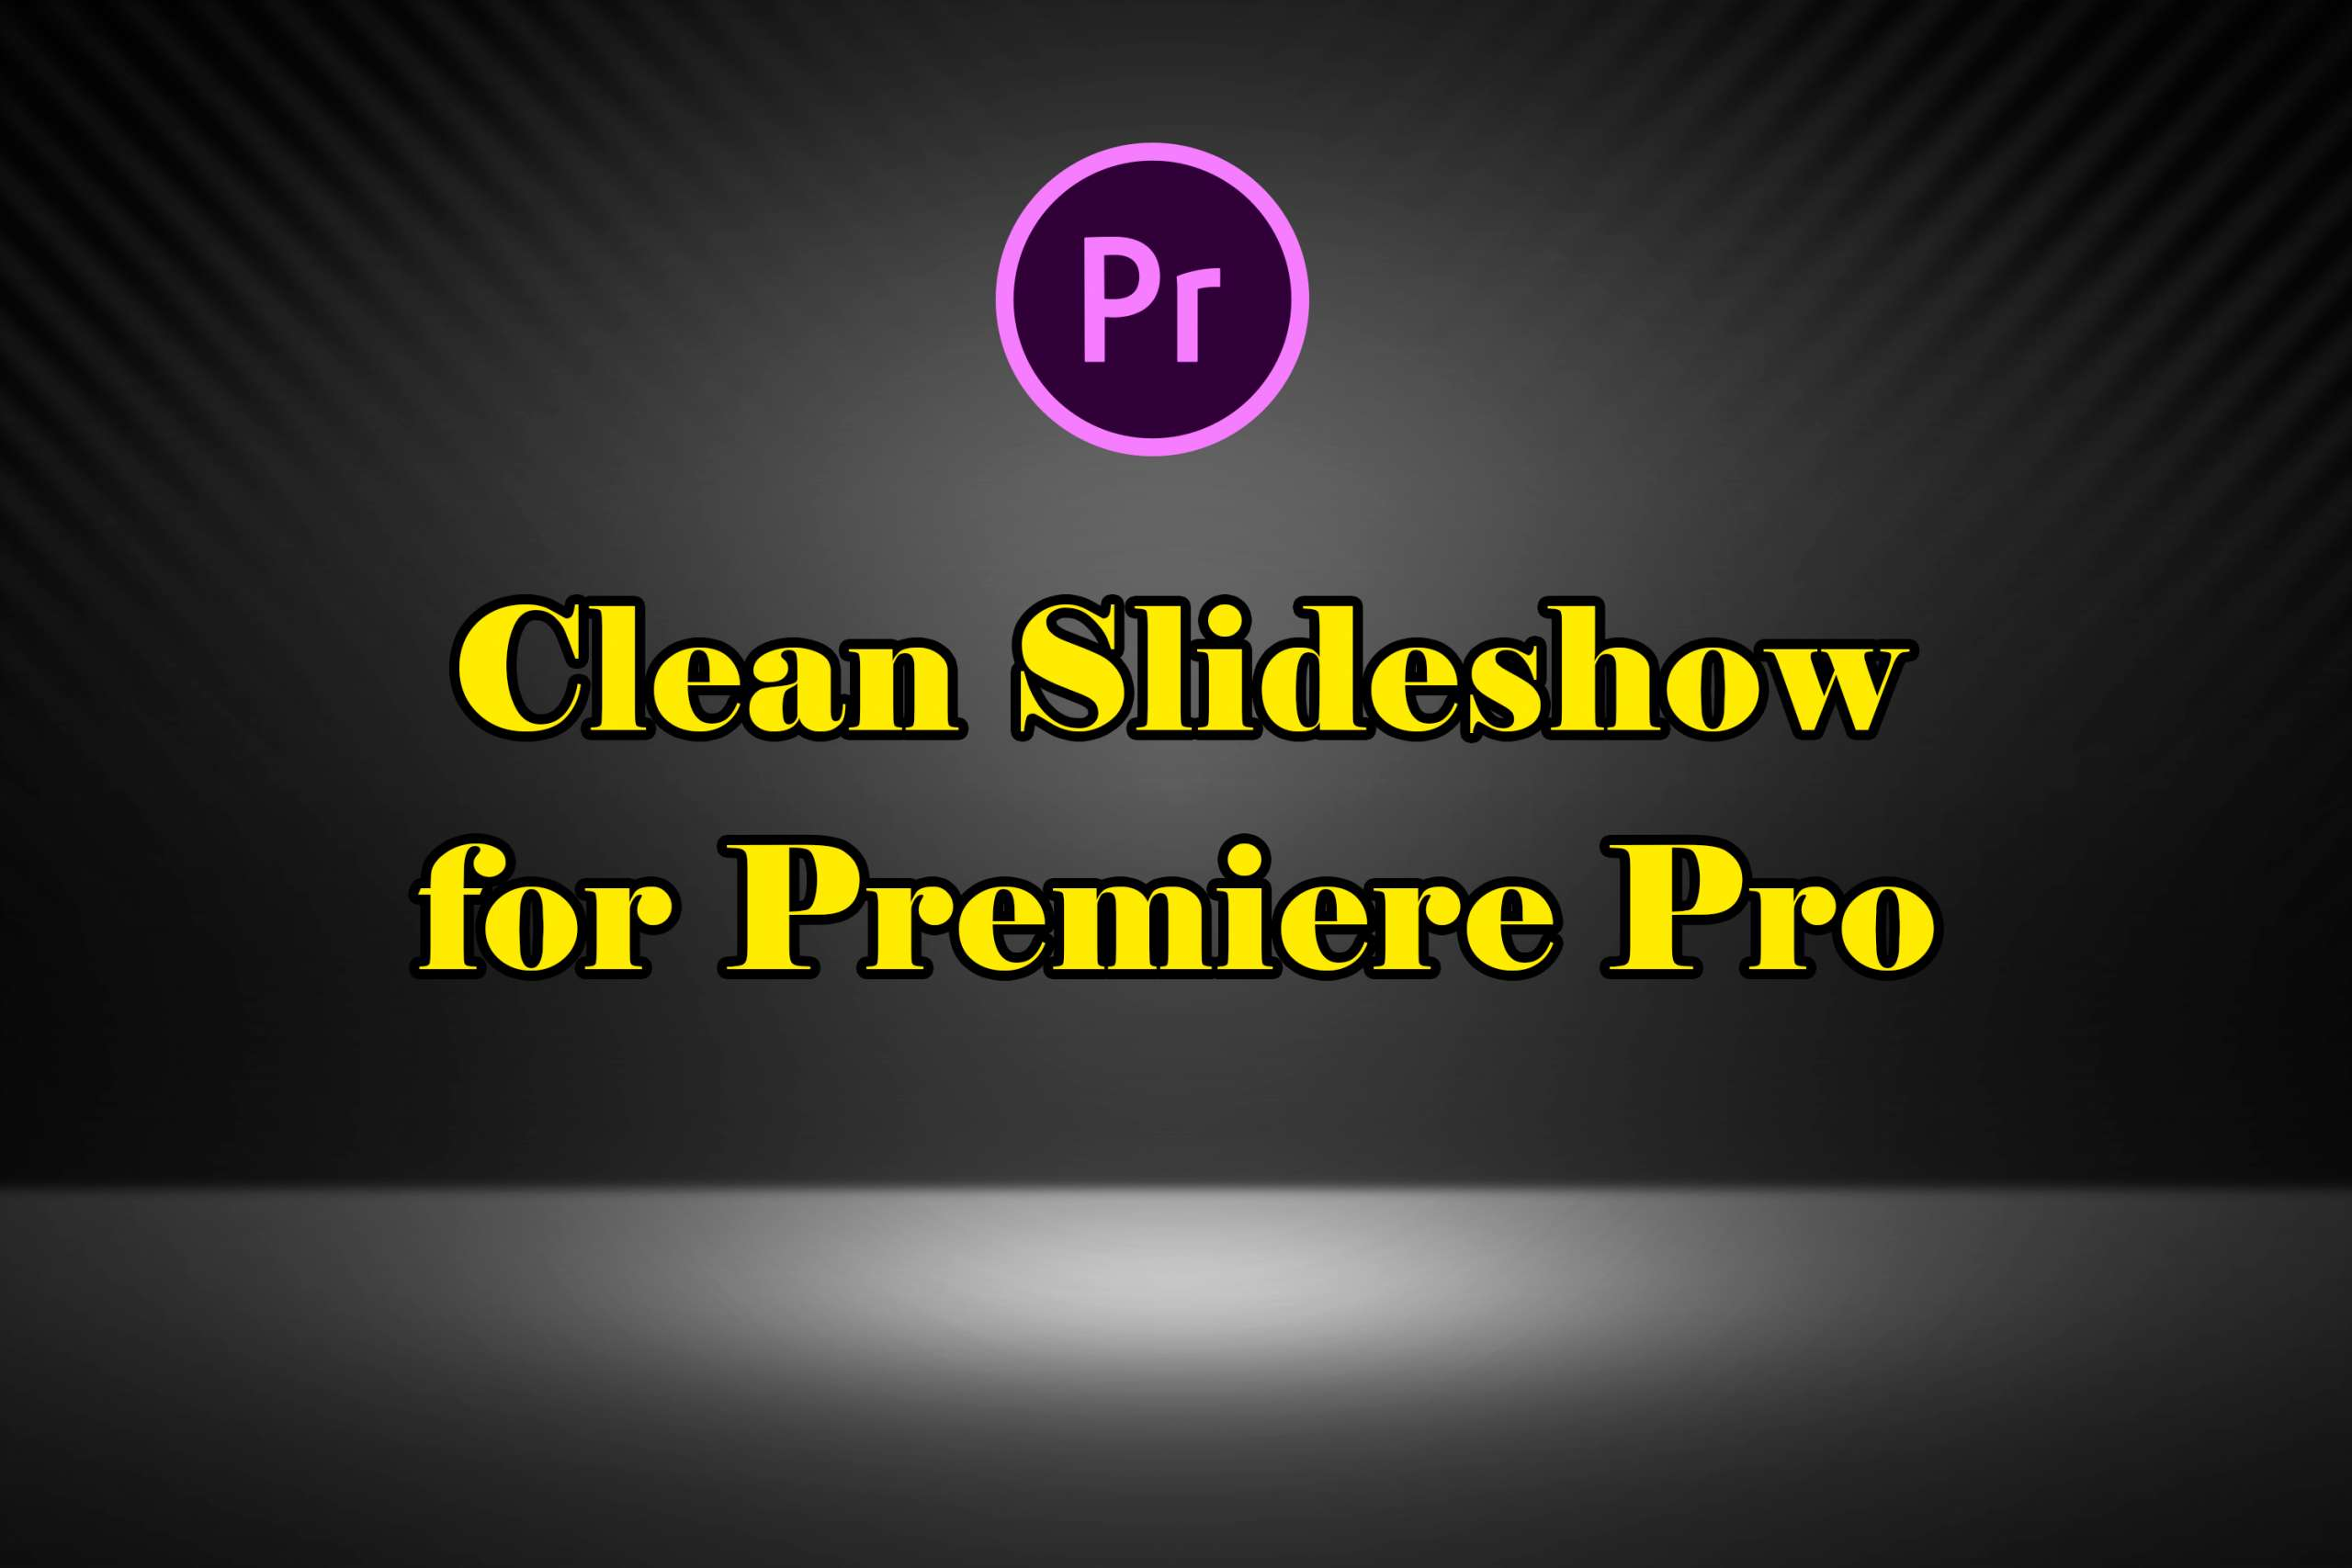 Clean Slideshow for Premiere Pro